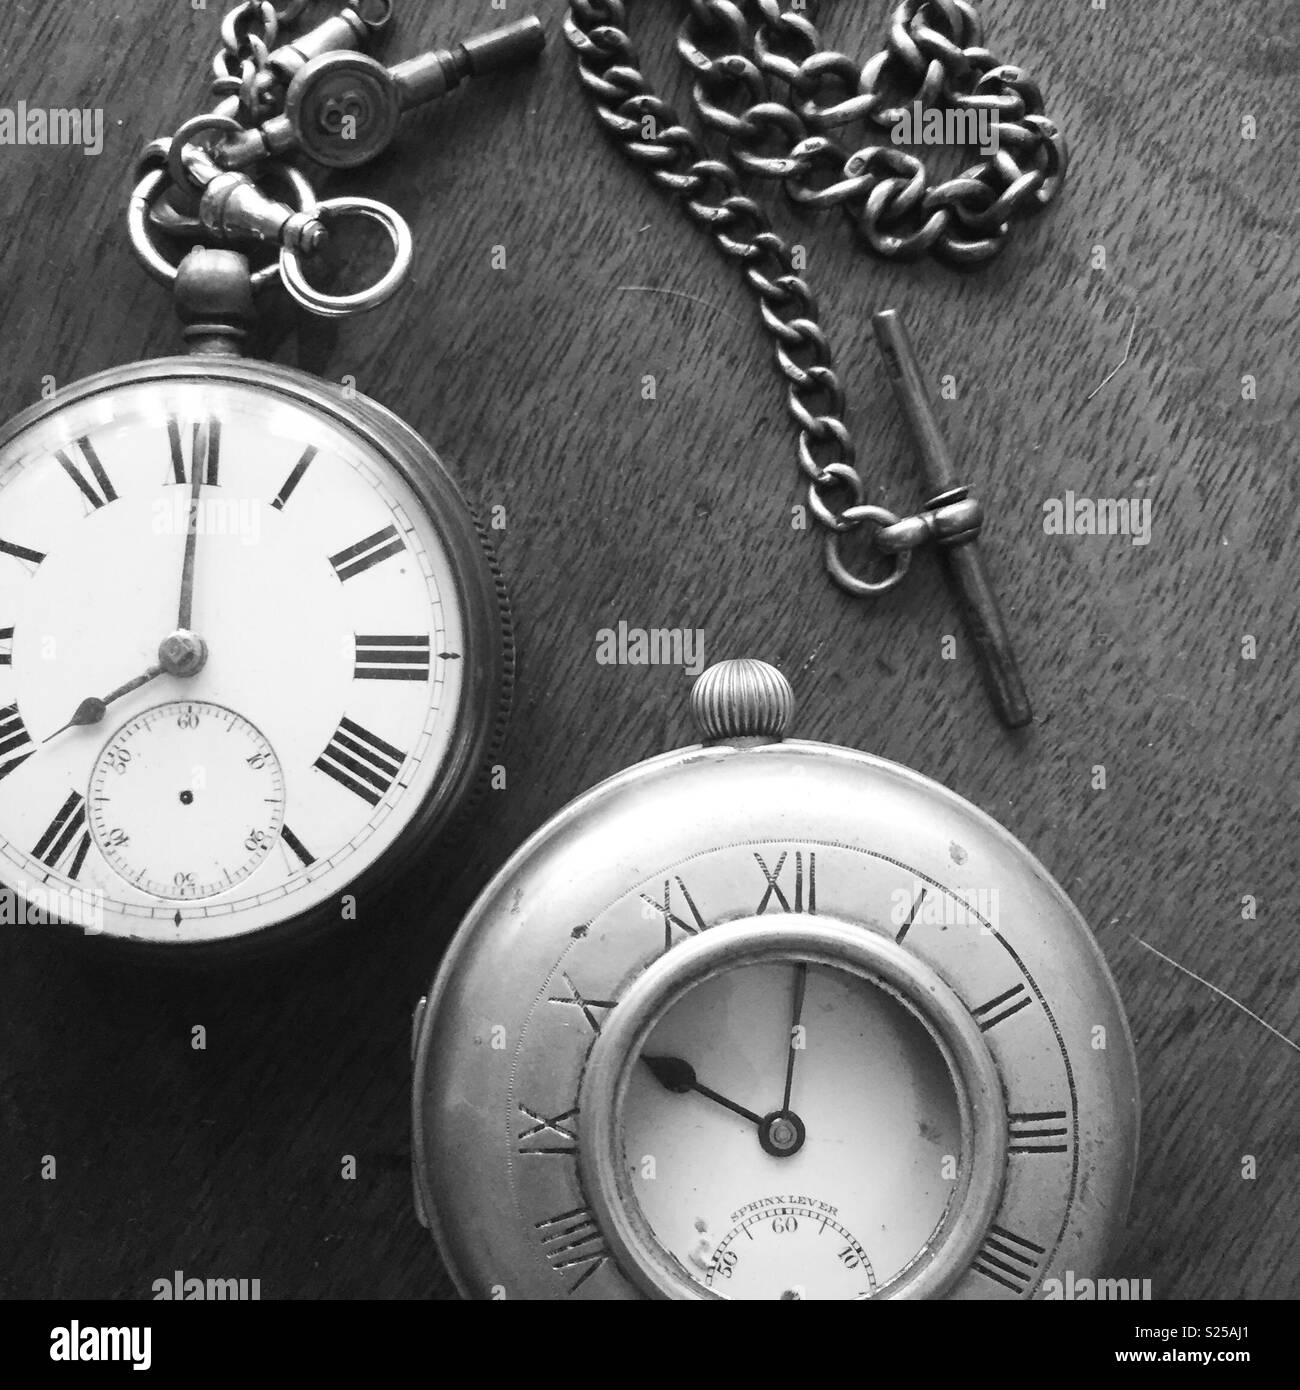 Two old watches on a table - Stock Image